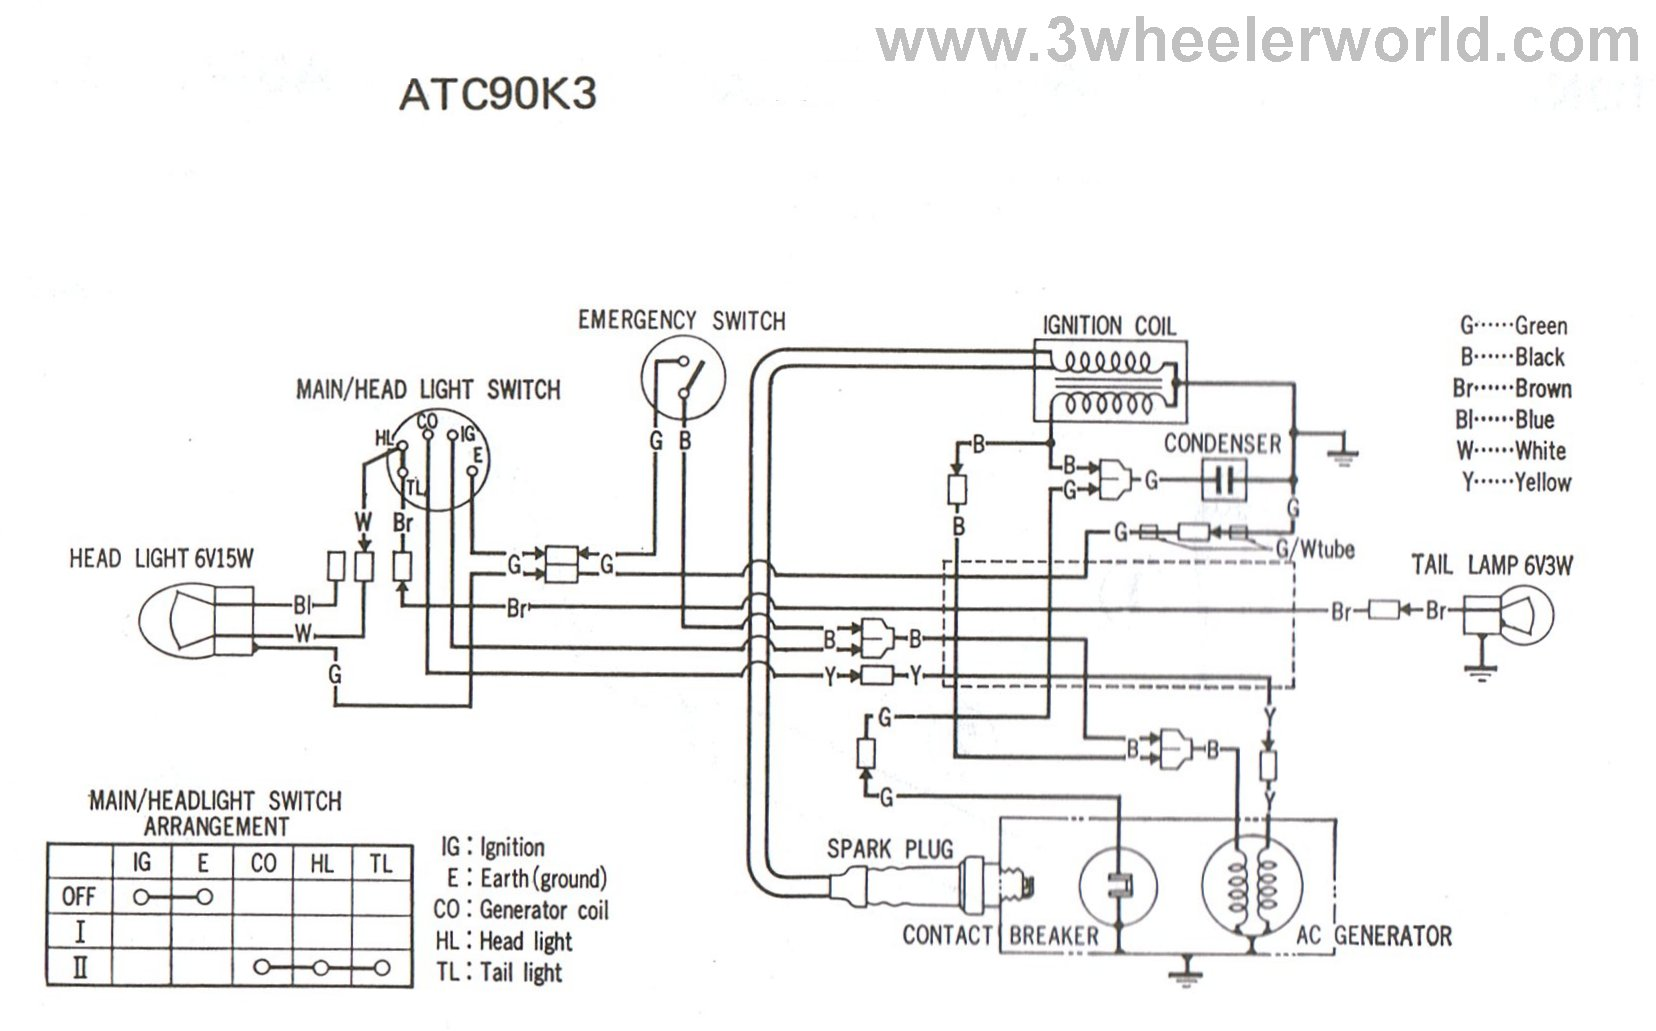 hight resolution of polaris sportsman 90 wiring schematic data wiring diagram schema polaris sportsman 500 wiring diagram 04 polaris scrambler 90cc wiring diagram